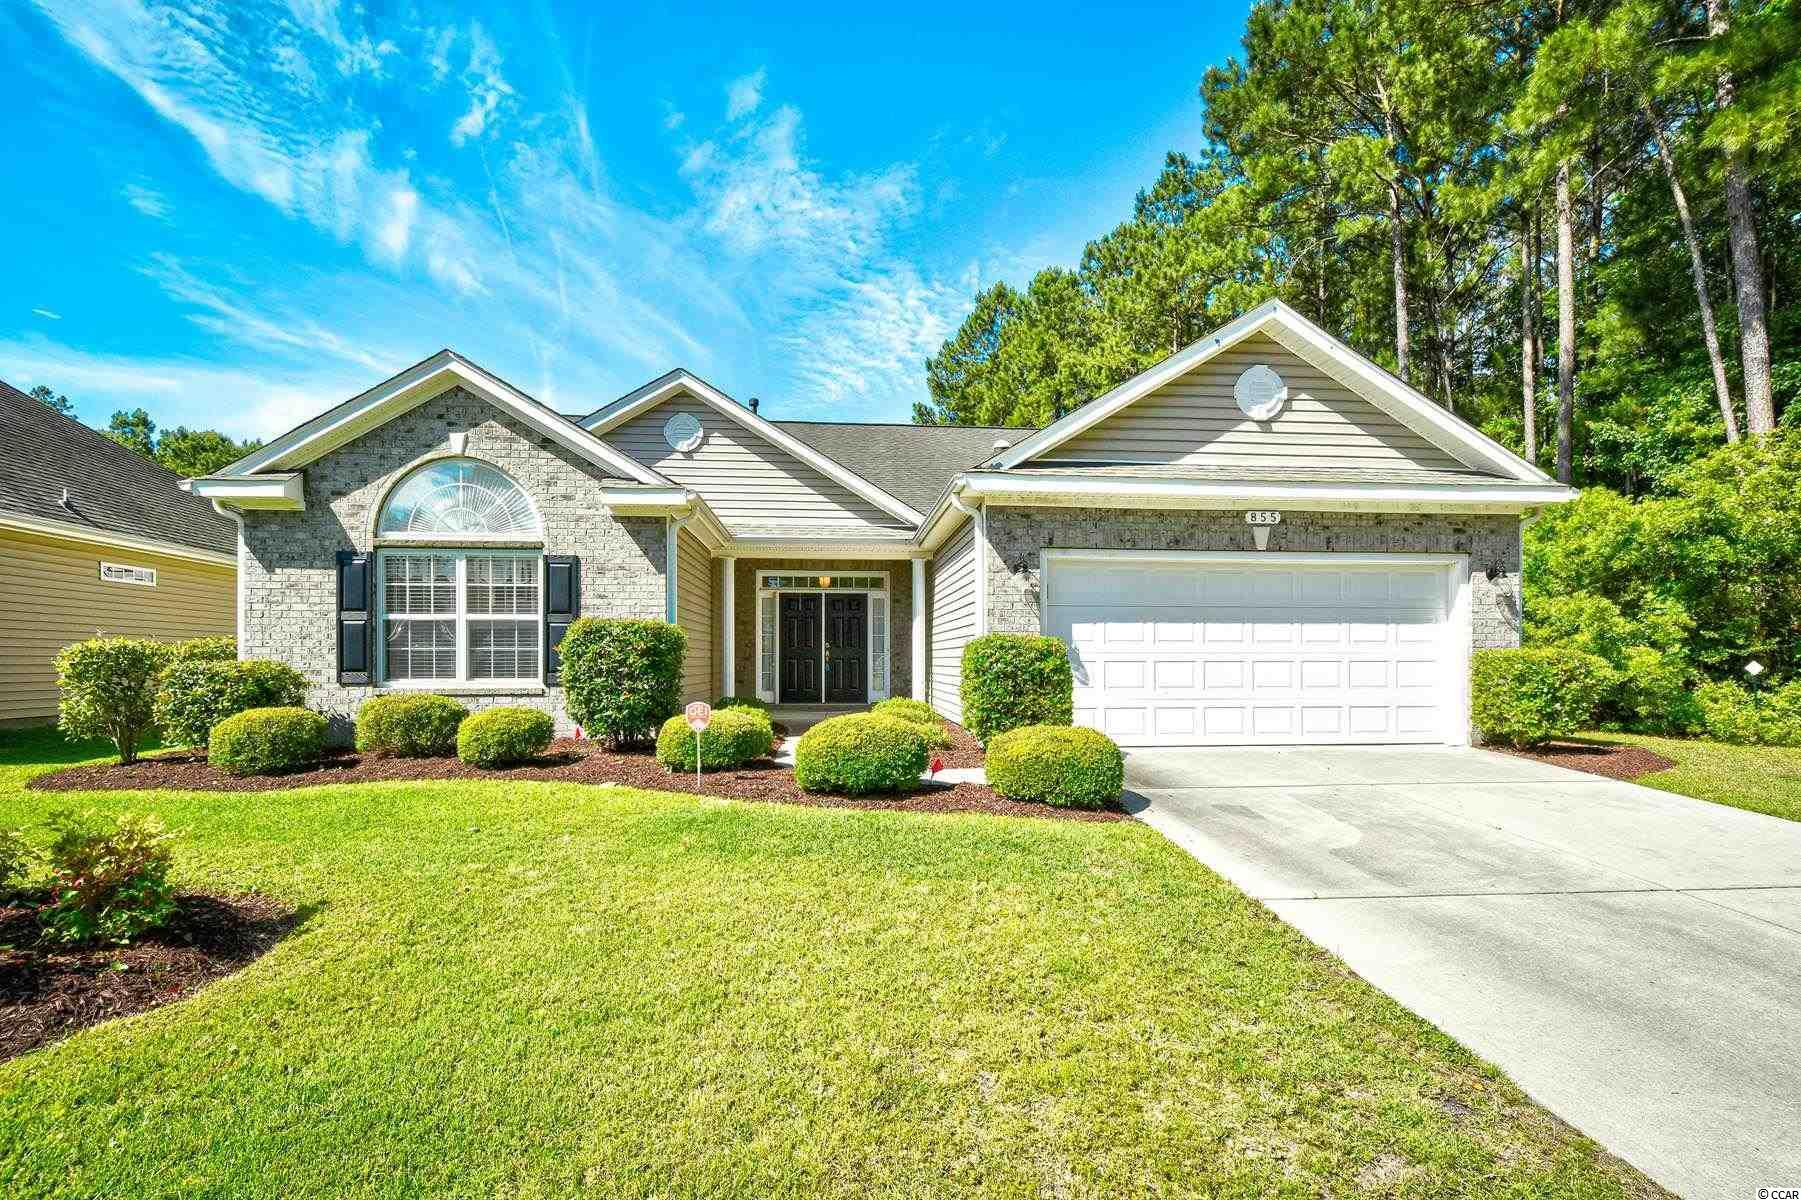 Welcome home to this beautifully upgraded 3 bedroom, 2.5 bathroom home in the quiet 55+ community, Myrtle Trace Grande. This home features a grand entryway with a spacious open floor plan of the main living areas, with a fireplace as a main focal point. The kitchen is equipped with all stainless steel appliances, granite countertops, plenty of cabinet and counter space with an additional work island, a breakfast nook, and a breakfast bar leading into the formal dining area. Each bedroom offers a ceiling fan, plenty of closet space and easy access to a bathroom with double sink vanities in each, while the master bedroom also offers tray ceilings, room for a seating area, a large walk in closet, and private master bath with an oversized garden tub and walk in shower. A Carolina room can be used as an office space or additional living area. Furnishings are negotiable with sale, washer and dryer are included. A two car garage adds ease and convenience, and a preserve area on one side means no one can build right next to you! Enjoy afternoons in your screened in patio, in your backyard with manicured landscaping, or relaxing at the community pool, with all of the area's finest dining, shopping, golf, and entertainment attractions close by. Make this your forever home. Schedule your showing today!